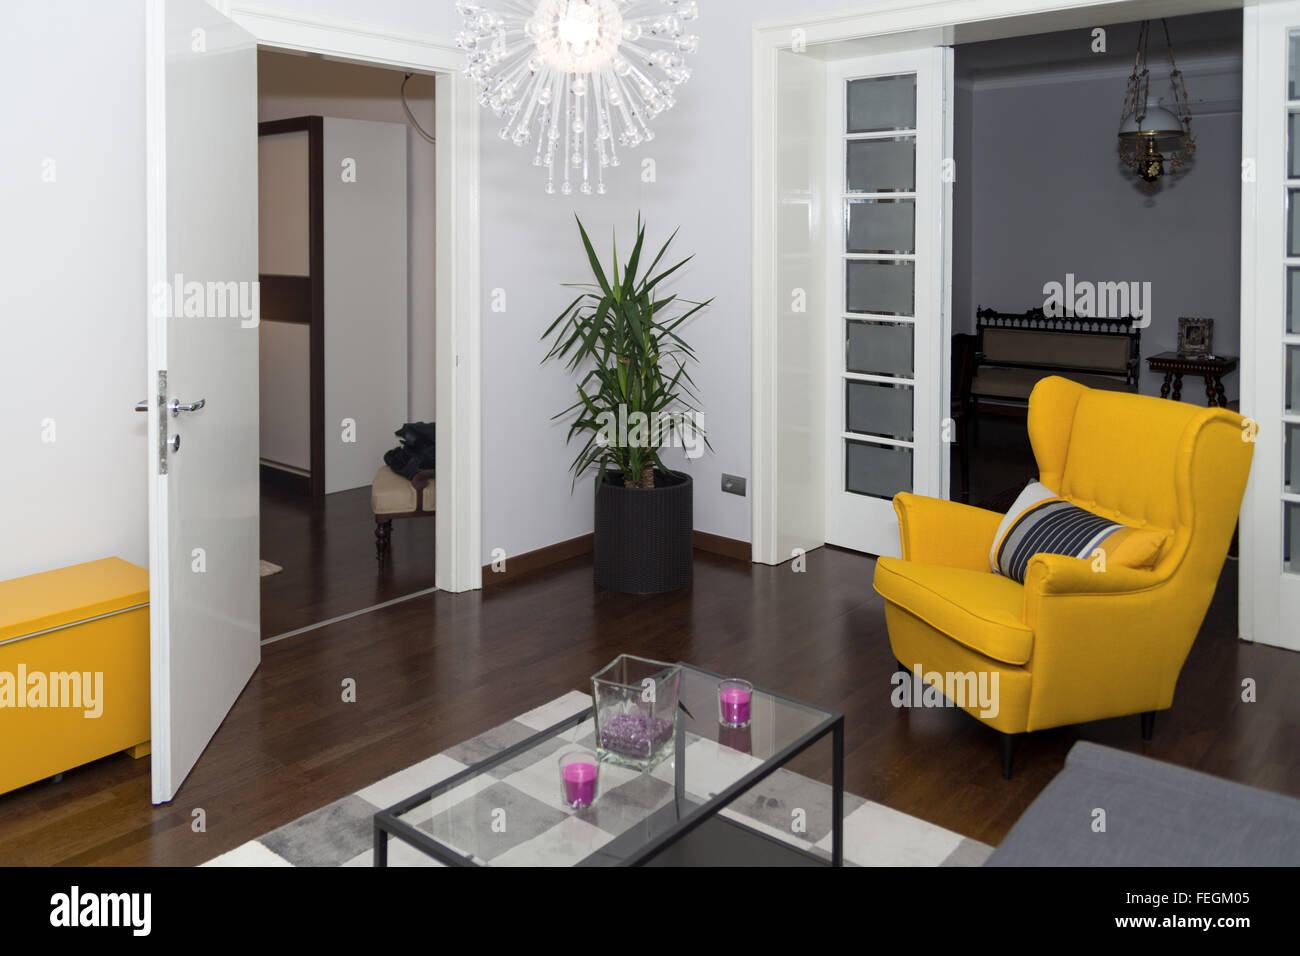 Modern Hotel Apartment With 3d Living Room And Bedroom Interior Stock Photo Alamy